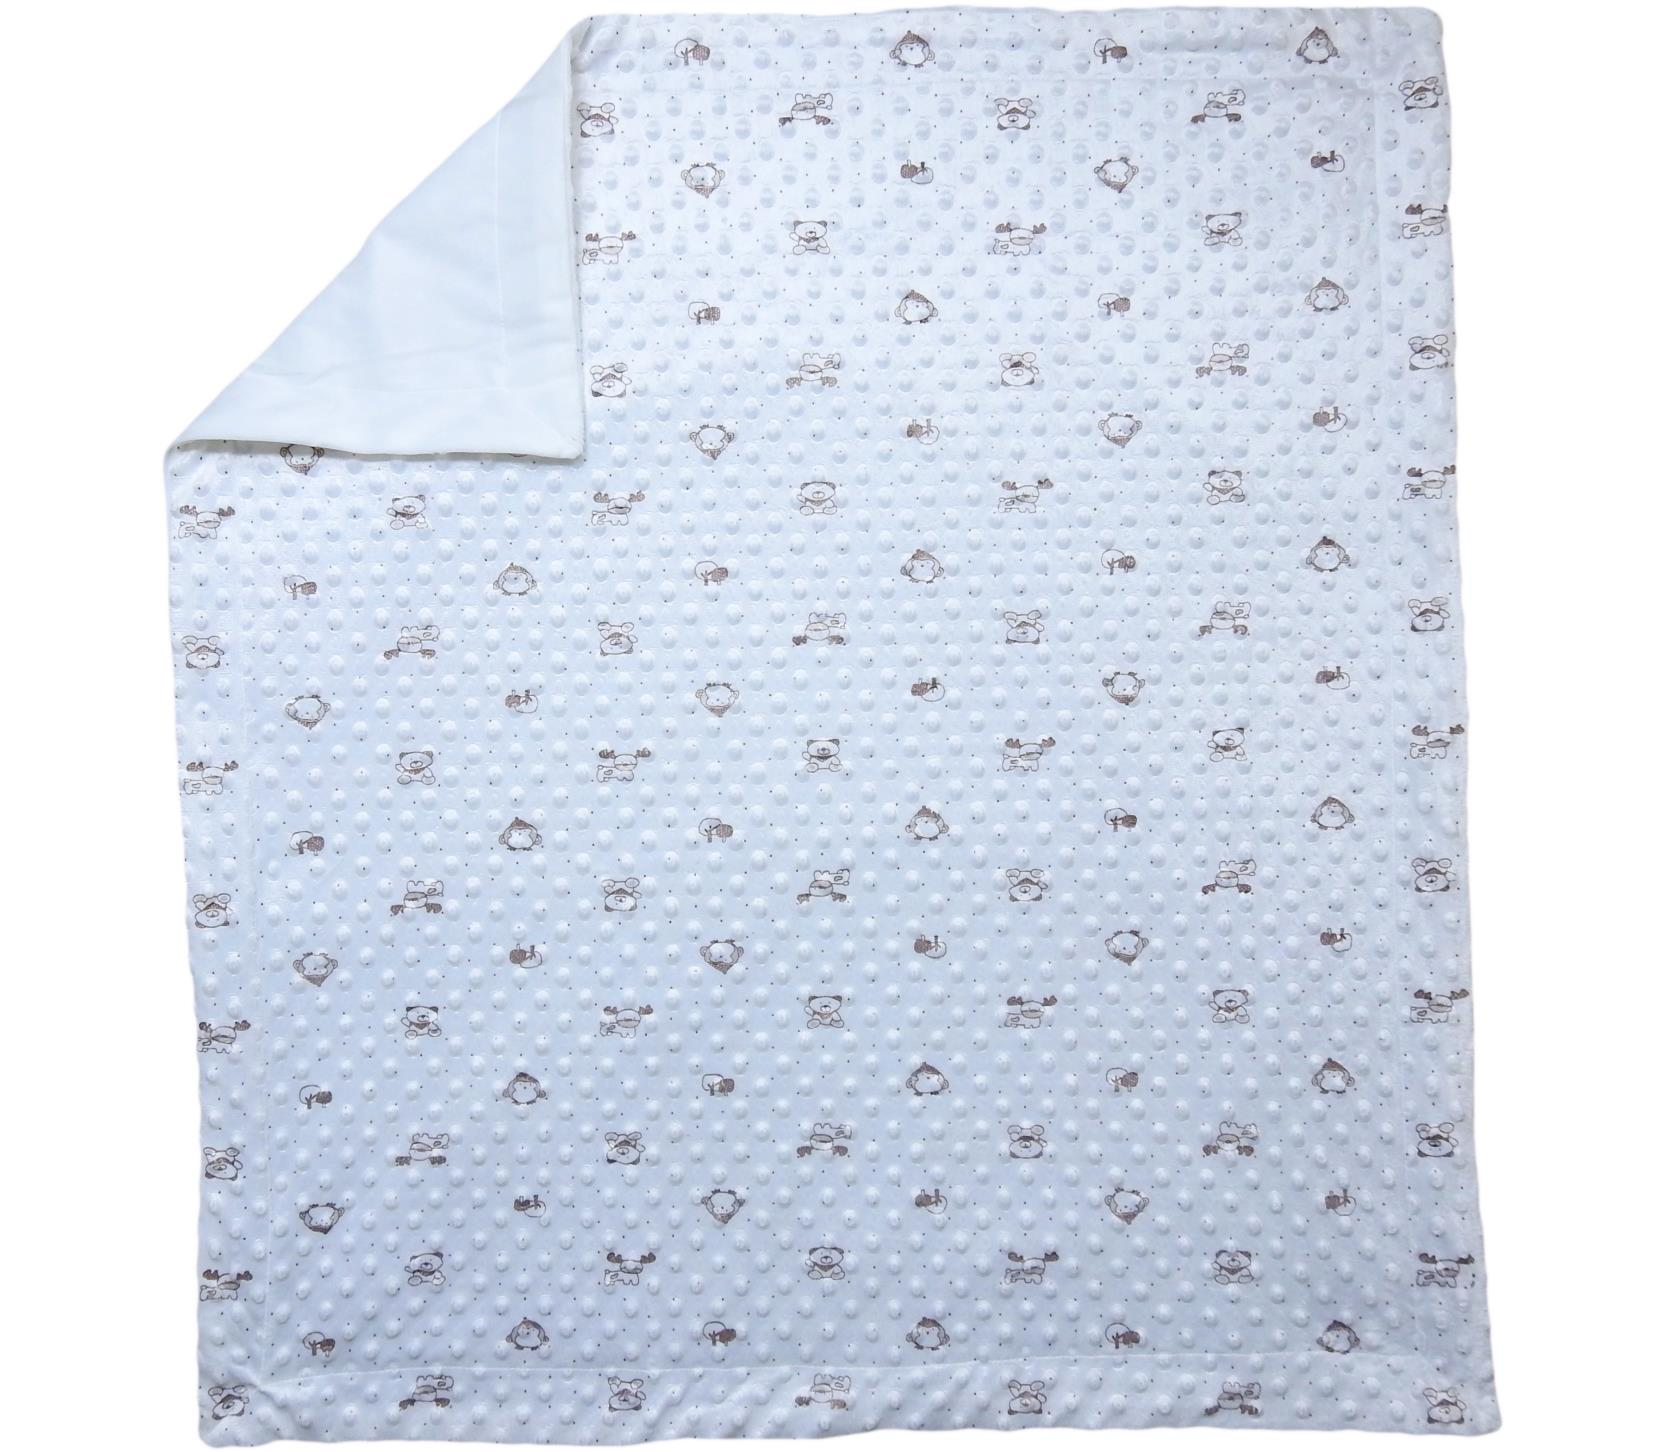 wholesale high quality baby blanket